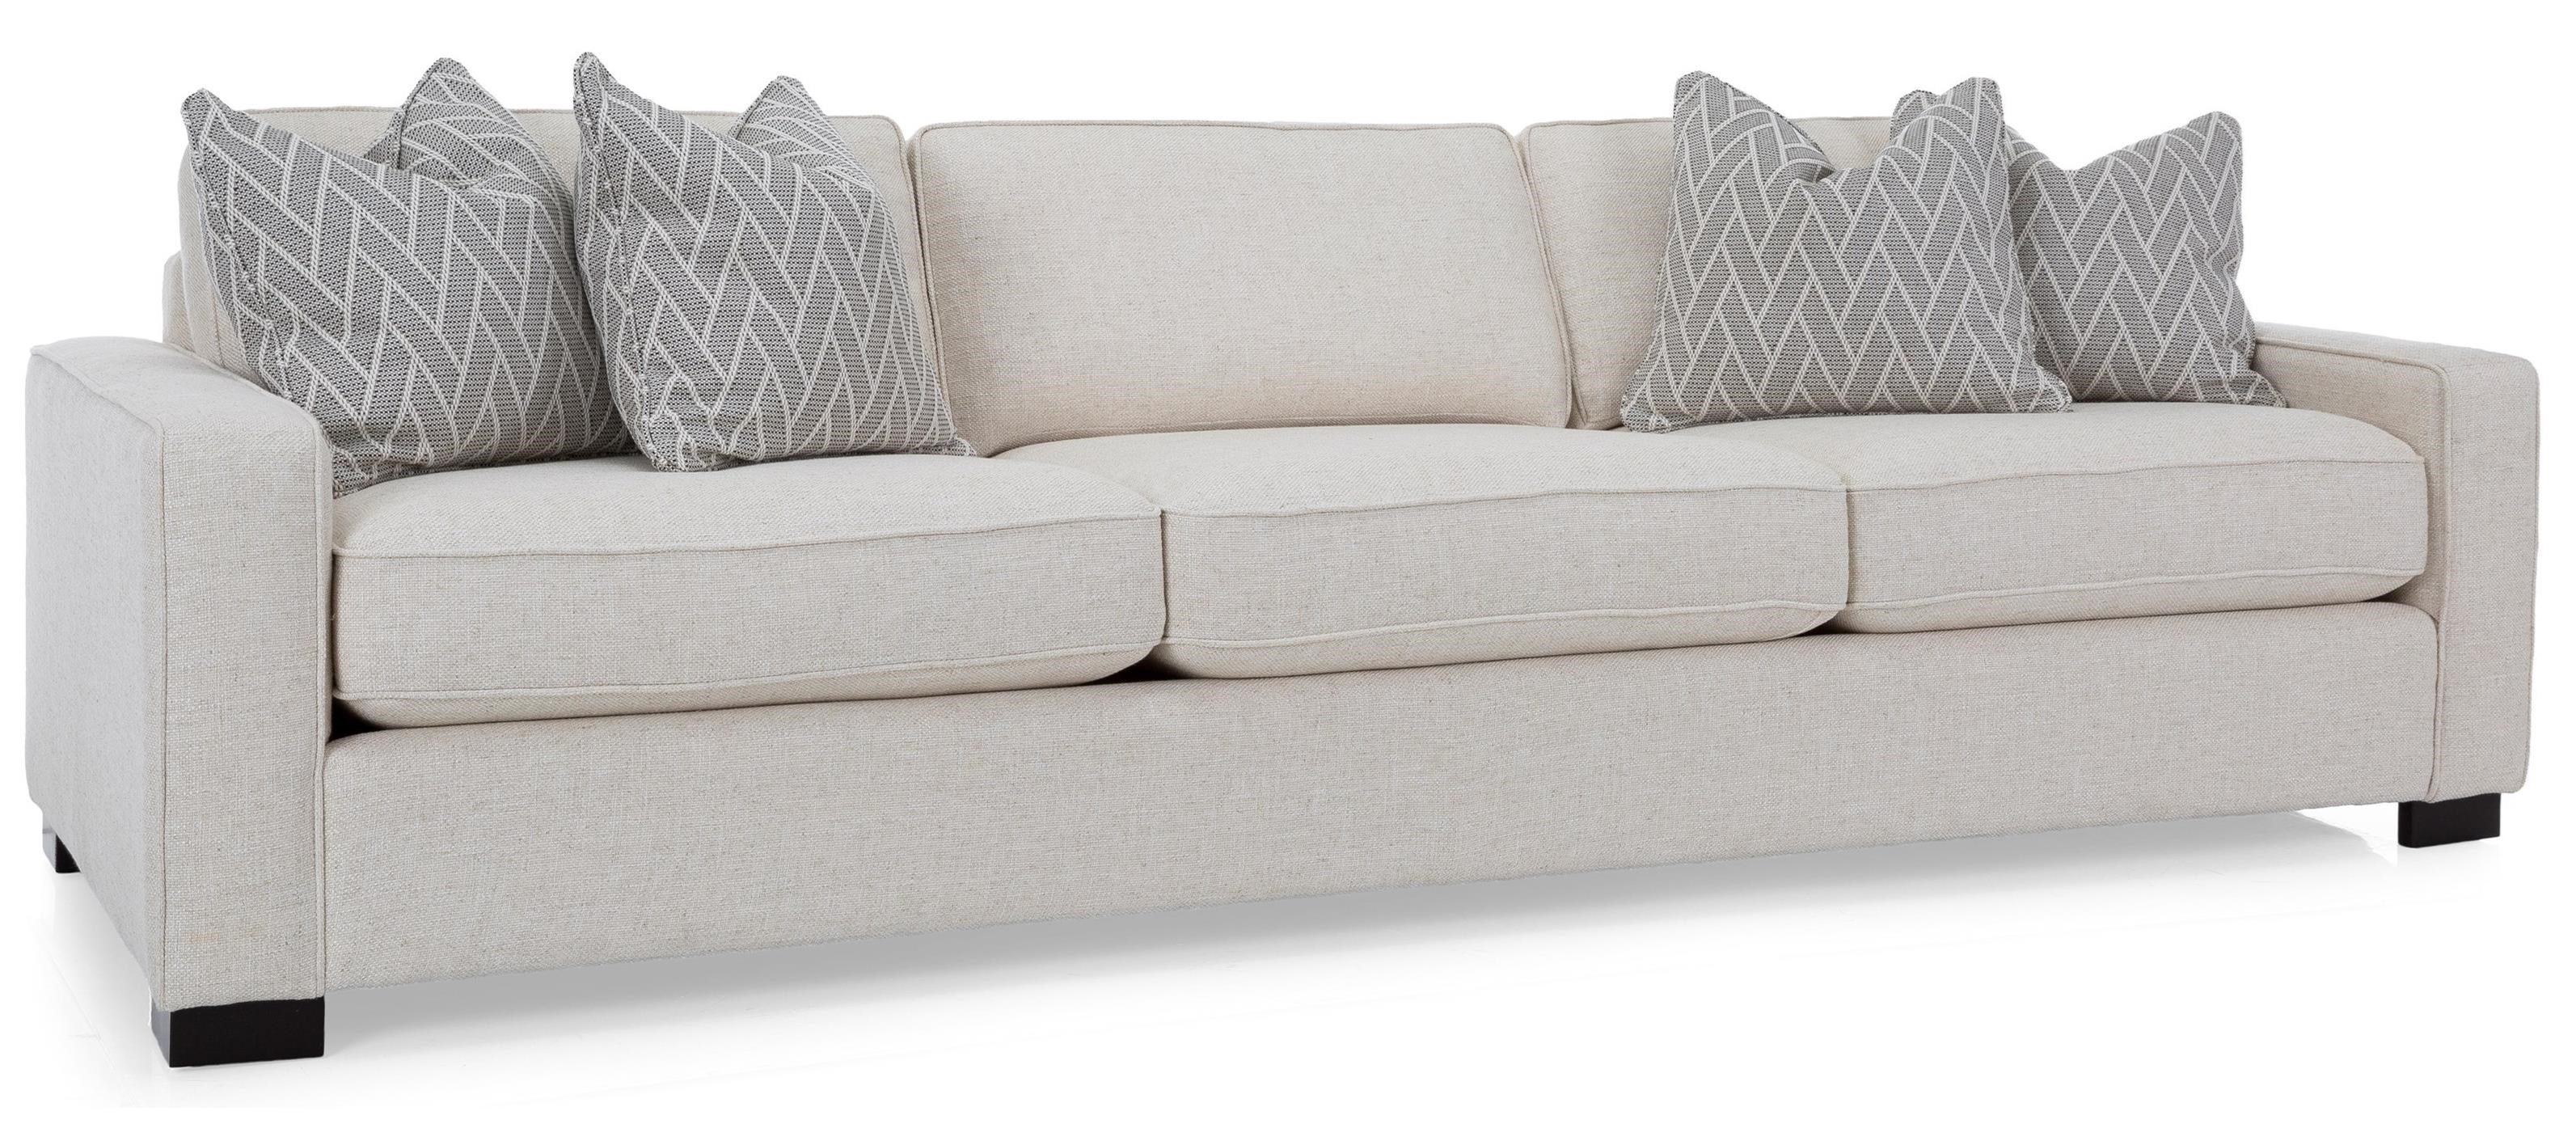 "2591 102"" Sofa by Decor-Rest at Upper Room Home Furnishings"